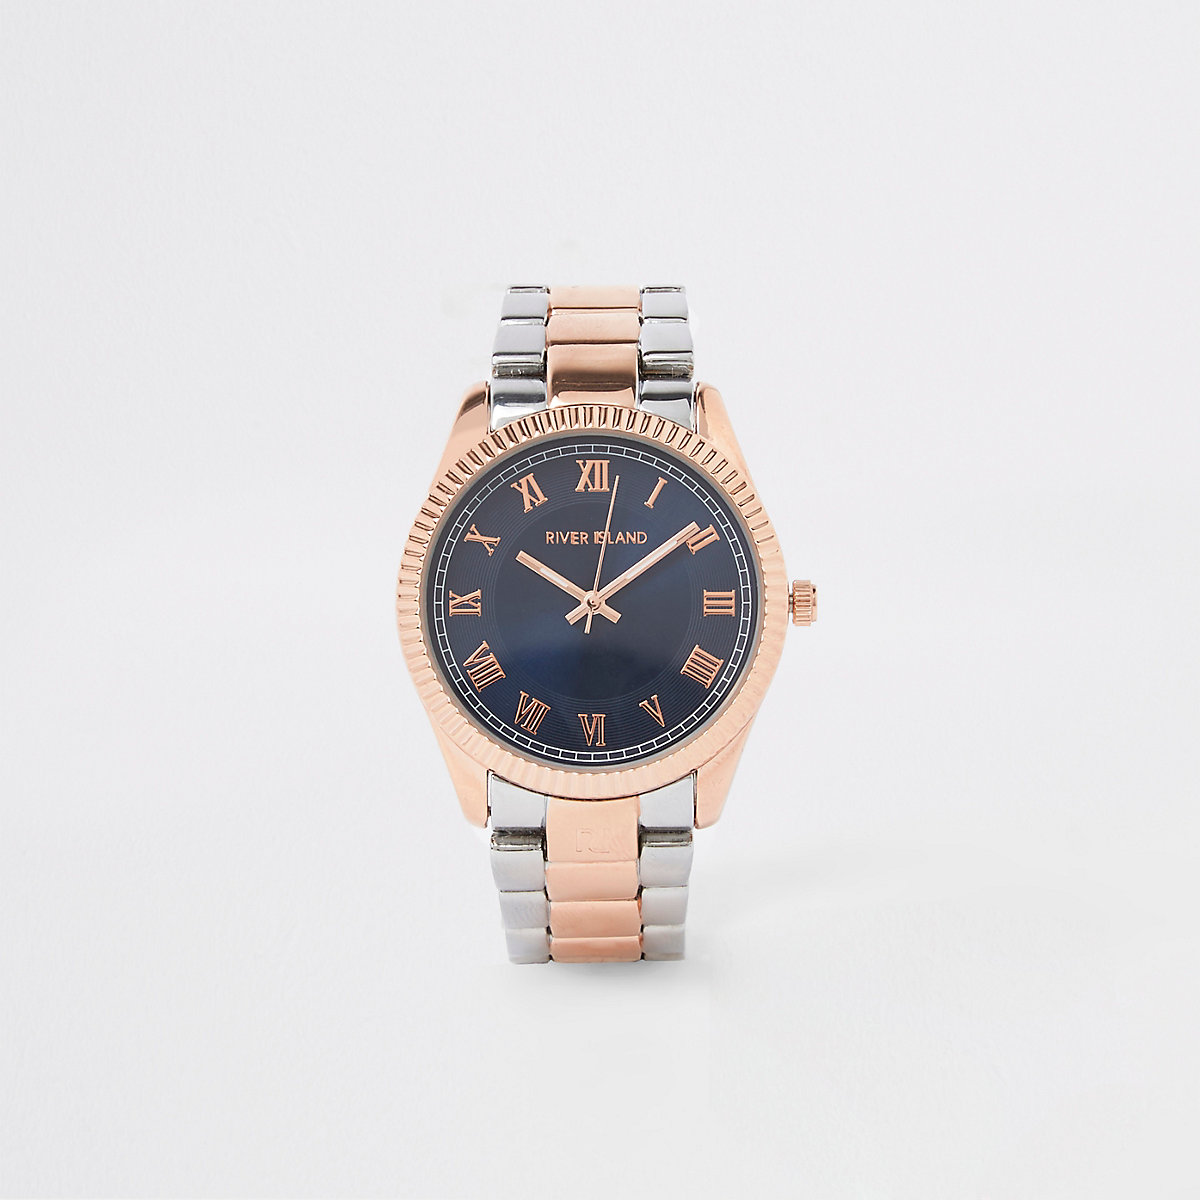 Rose gold and silver color bracelet watch